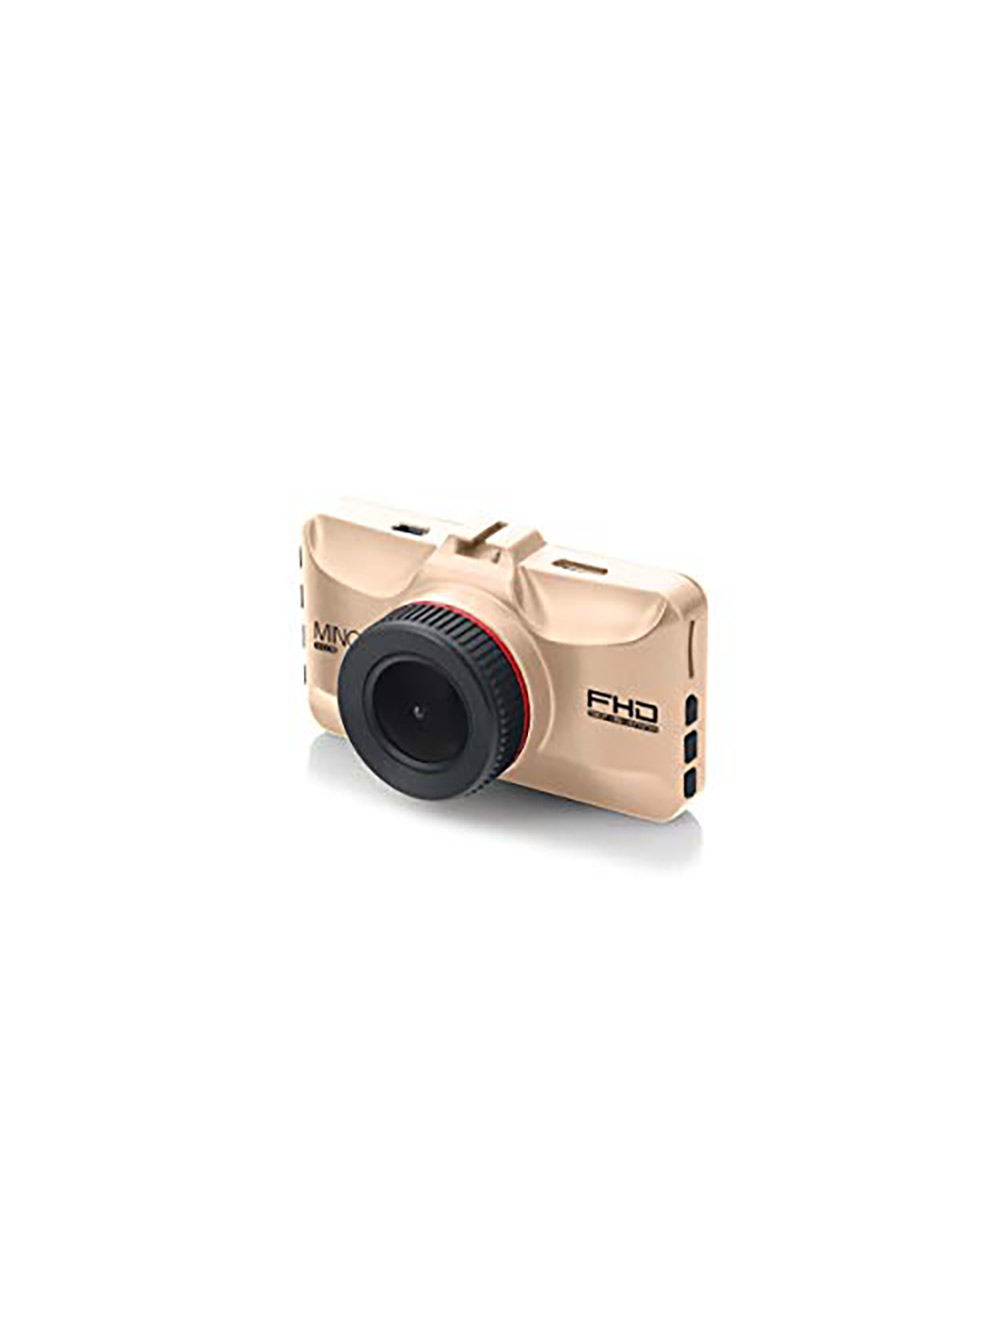 MNCD50 1080p Full HD Dash Camera